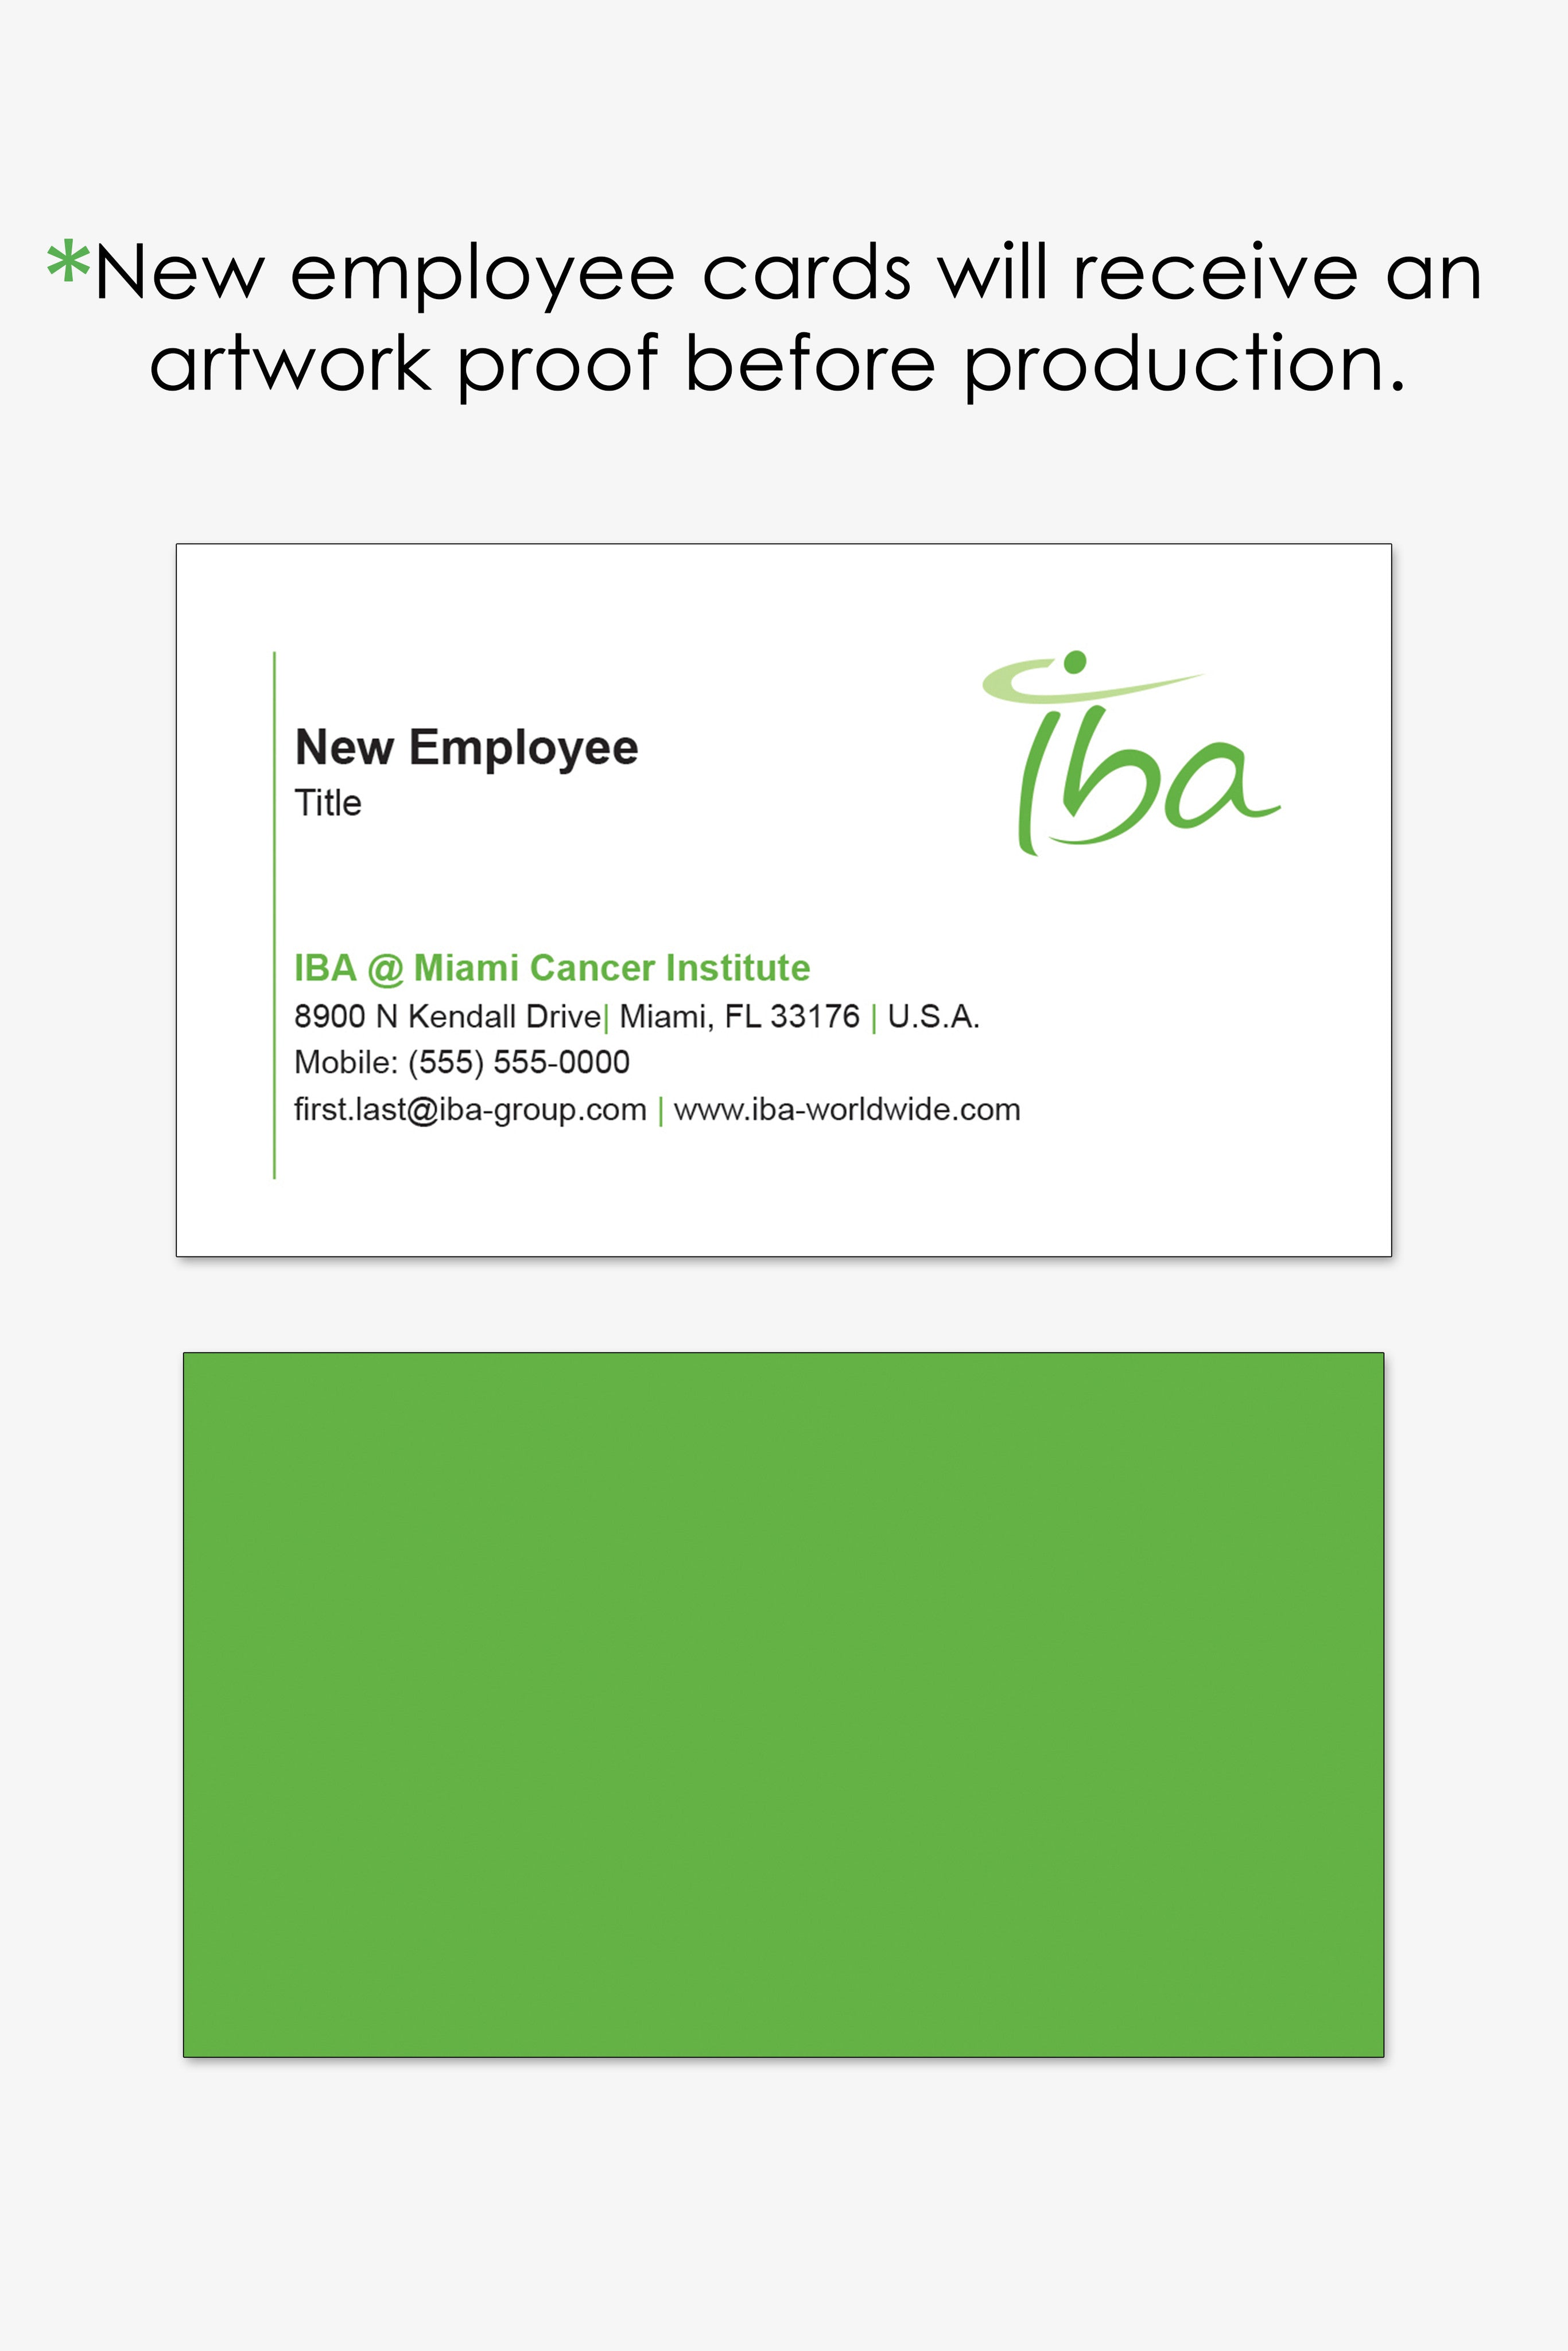 IBA Miamia business card reorder